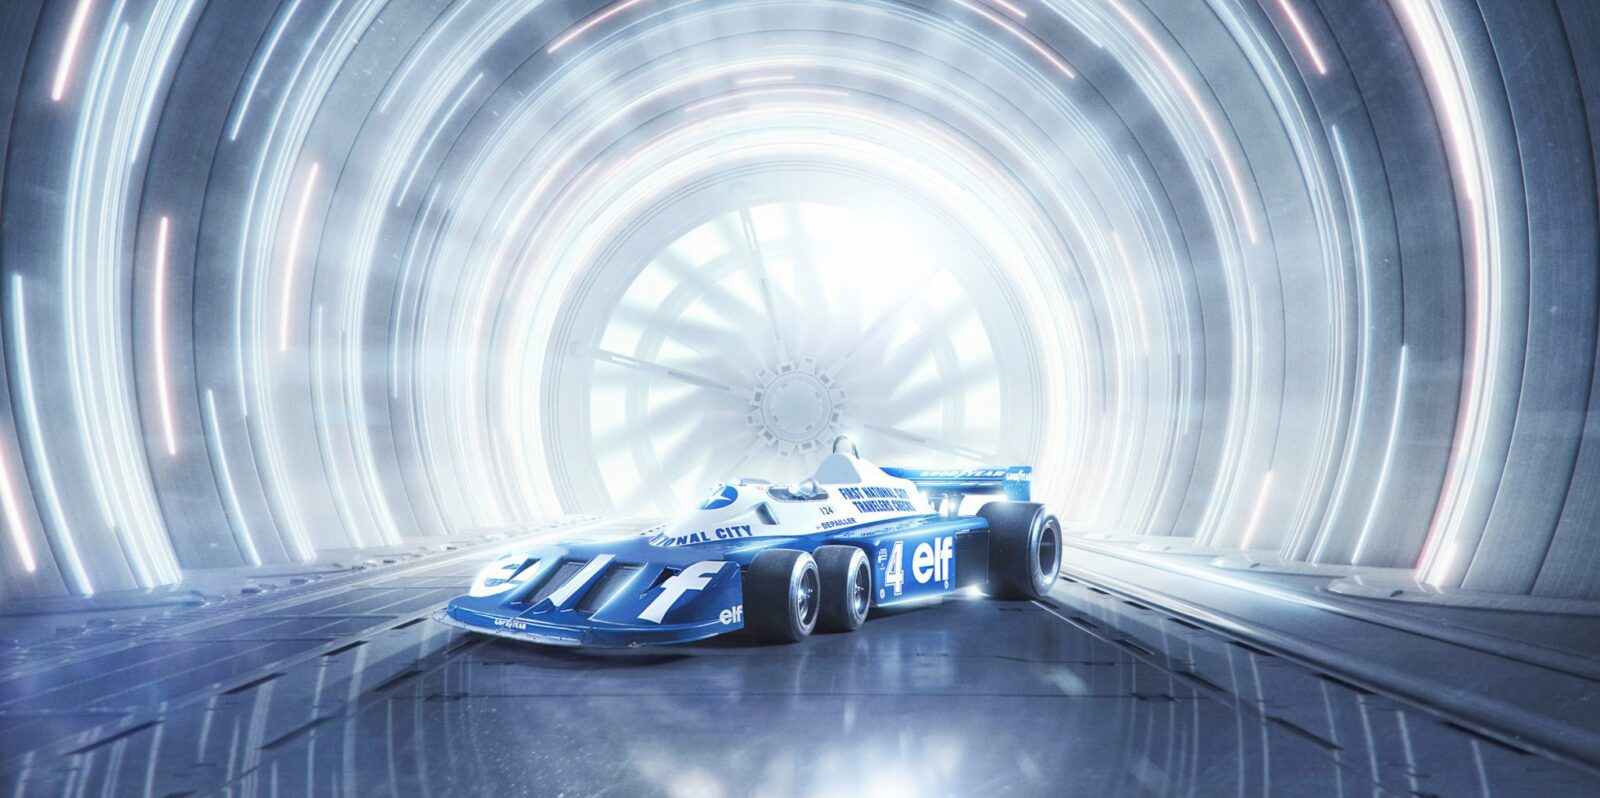 Tyrrell 1600x798 - Desktop Wallpapers: The Automotive Photography of Blair Bunting